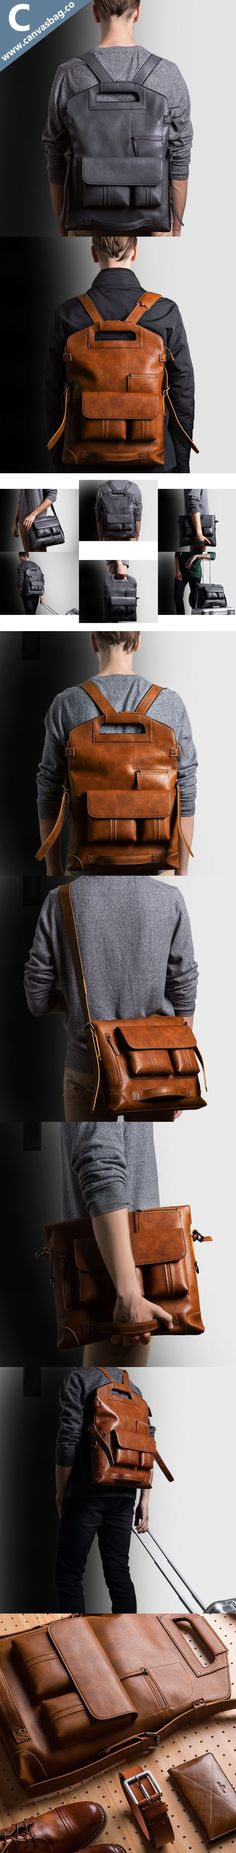 Co : Leather Convertible Backpack - Canvas Bag Leather Bag CanvasBag. Men's Backpack, Leather Backpack, Fashion Bags, Mens Fashion, Leather Portfolio, Cooler Look, Convertible Backpack, Work Bags, Leather Working